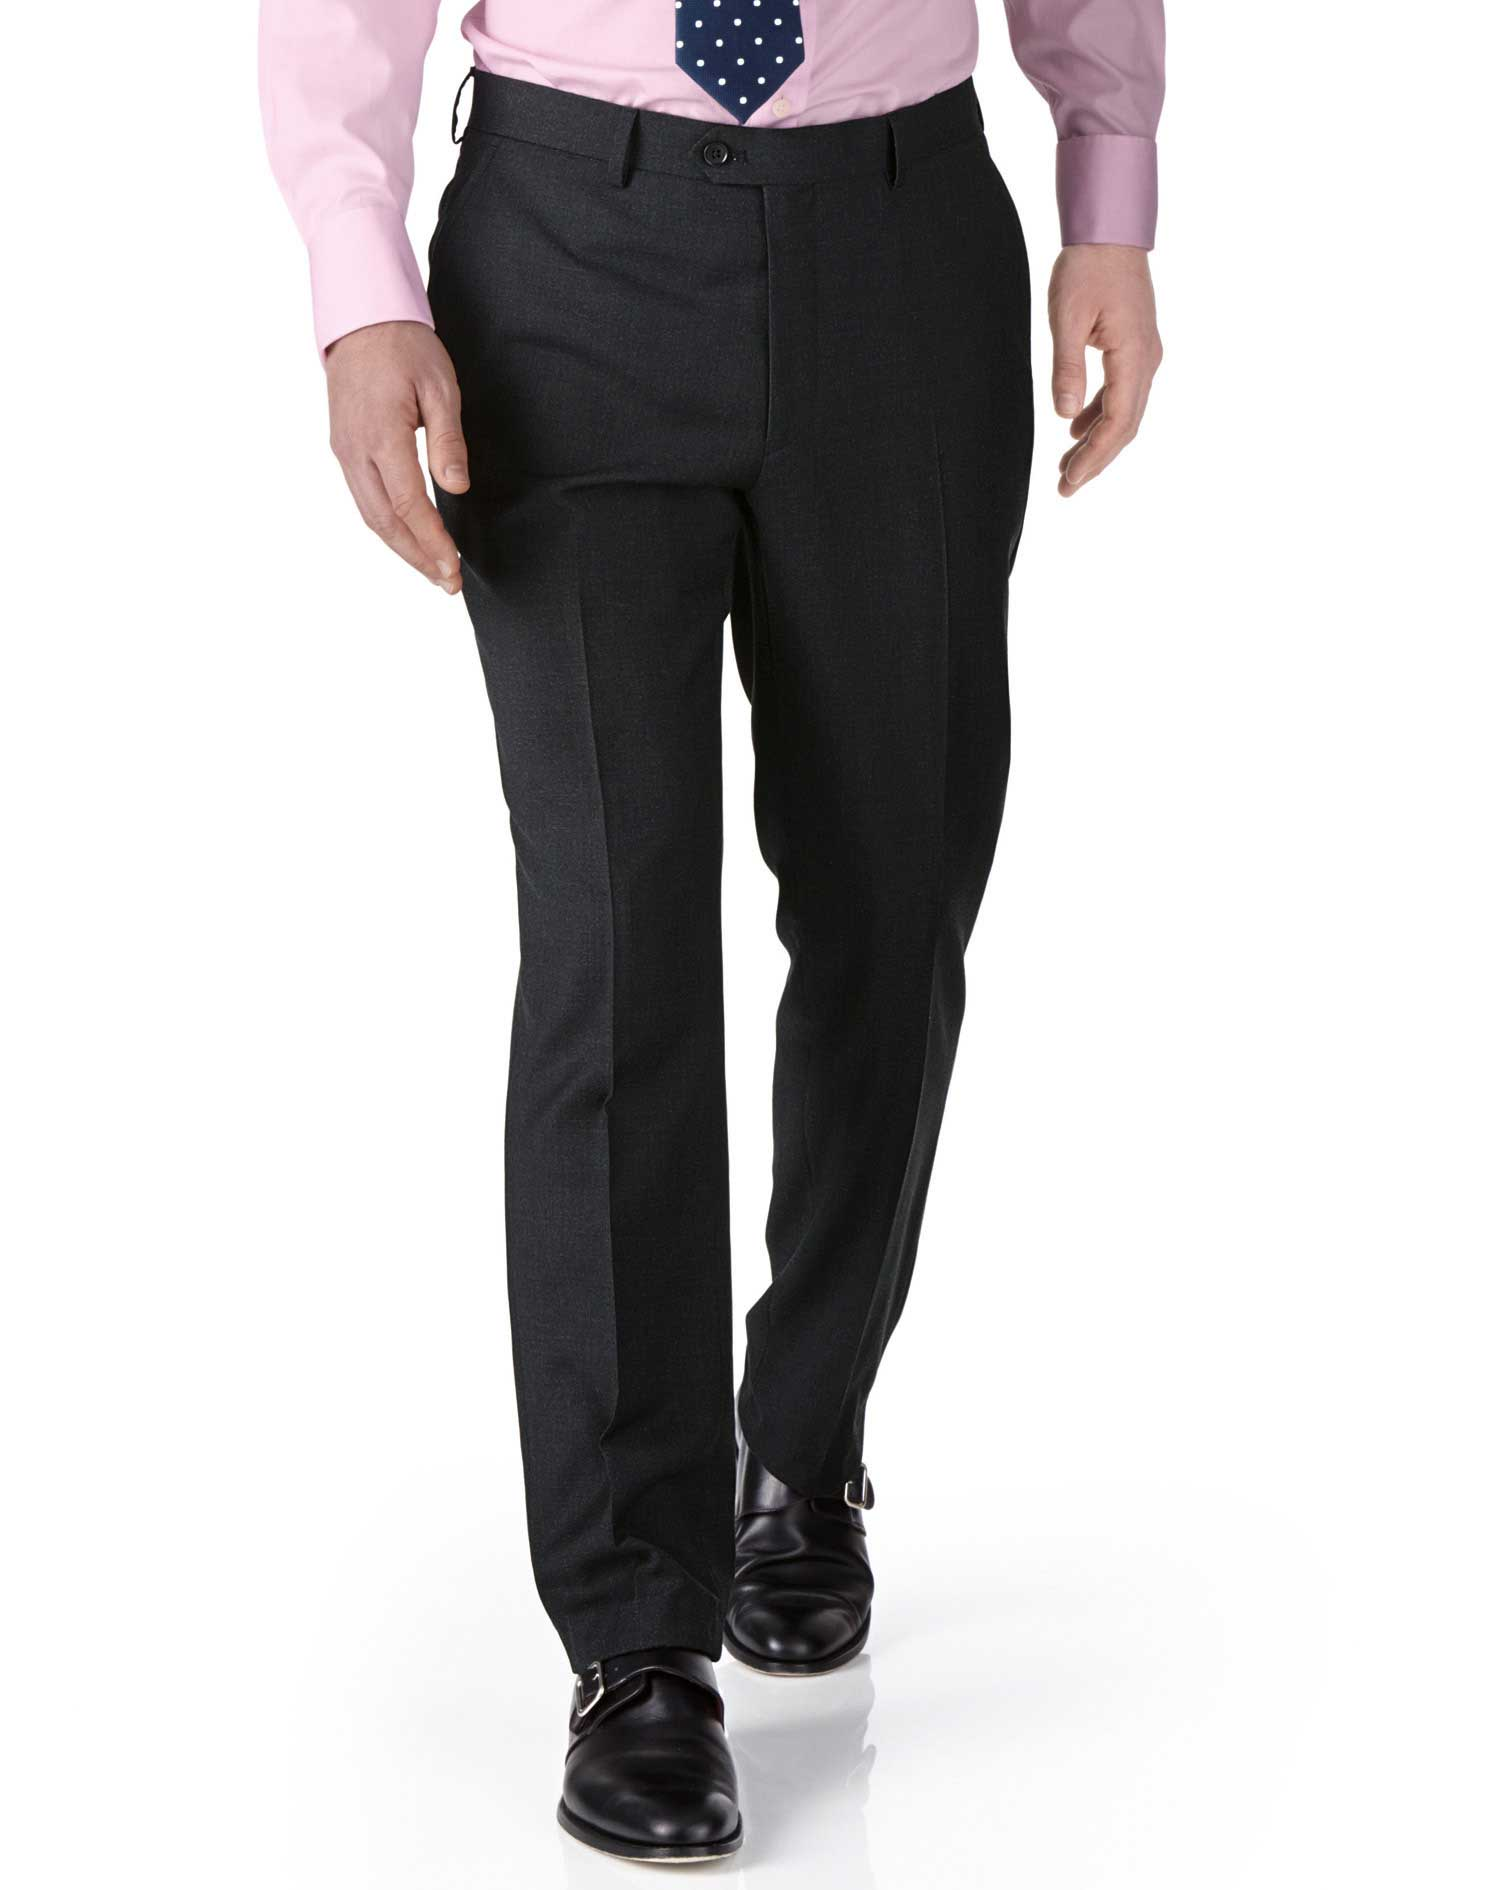 Charcoal Extra Slim Fit Twill Business Suit Trousers Size W36 L32 by Charles Tyrwhitt